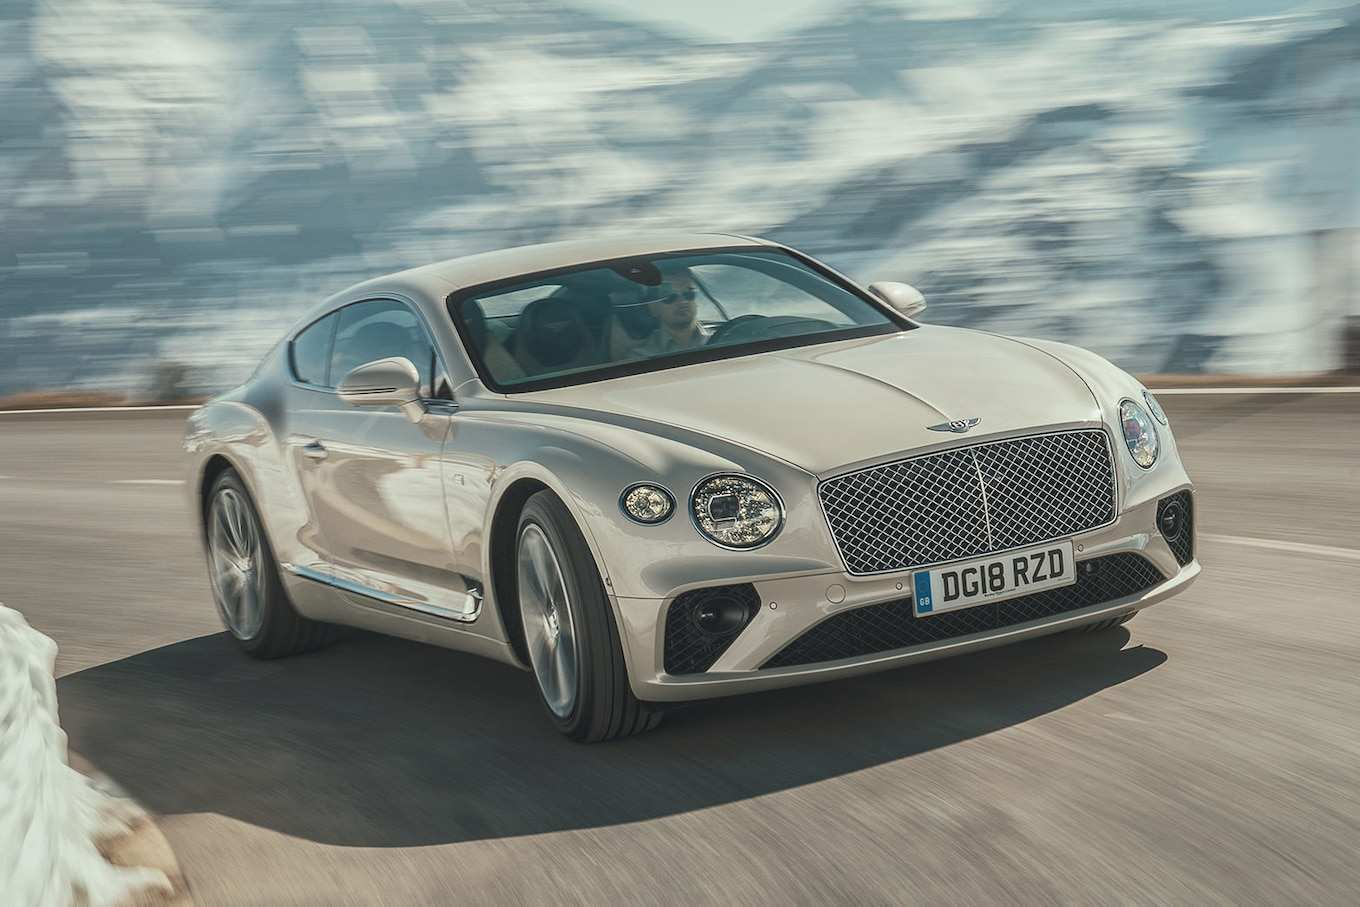 39 All New 2019 Bentley Continental Photos with 2019 Bentley Continental